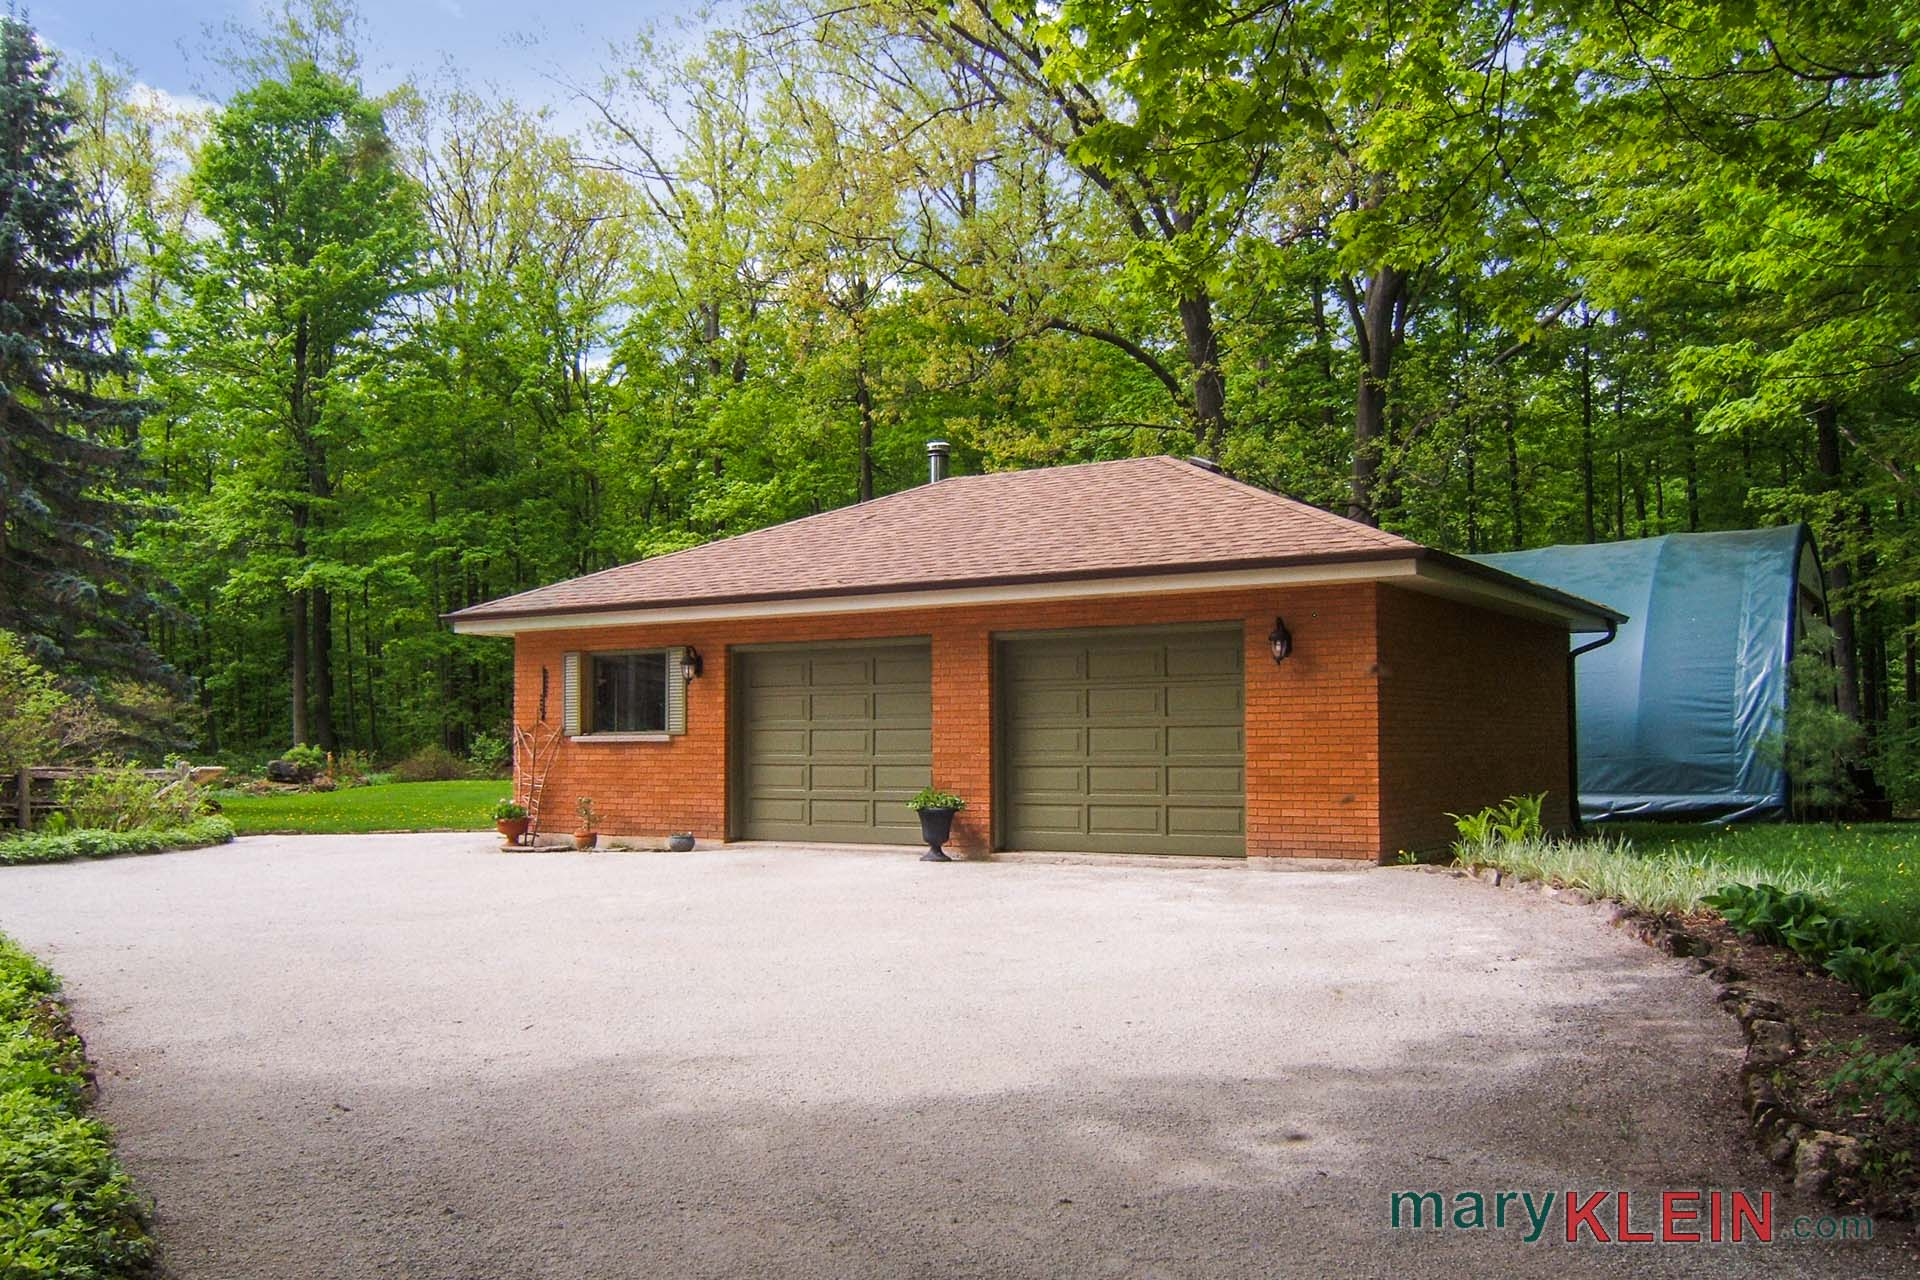 Detached 2 Car Garage, Wood stove, Quonset Dome